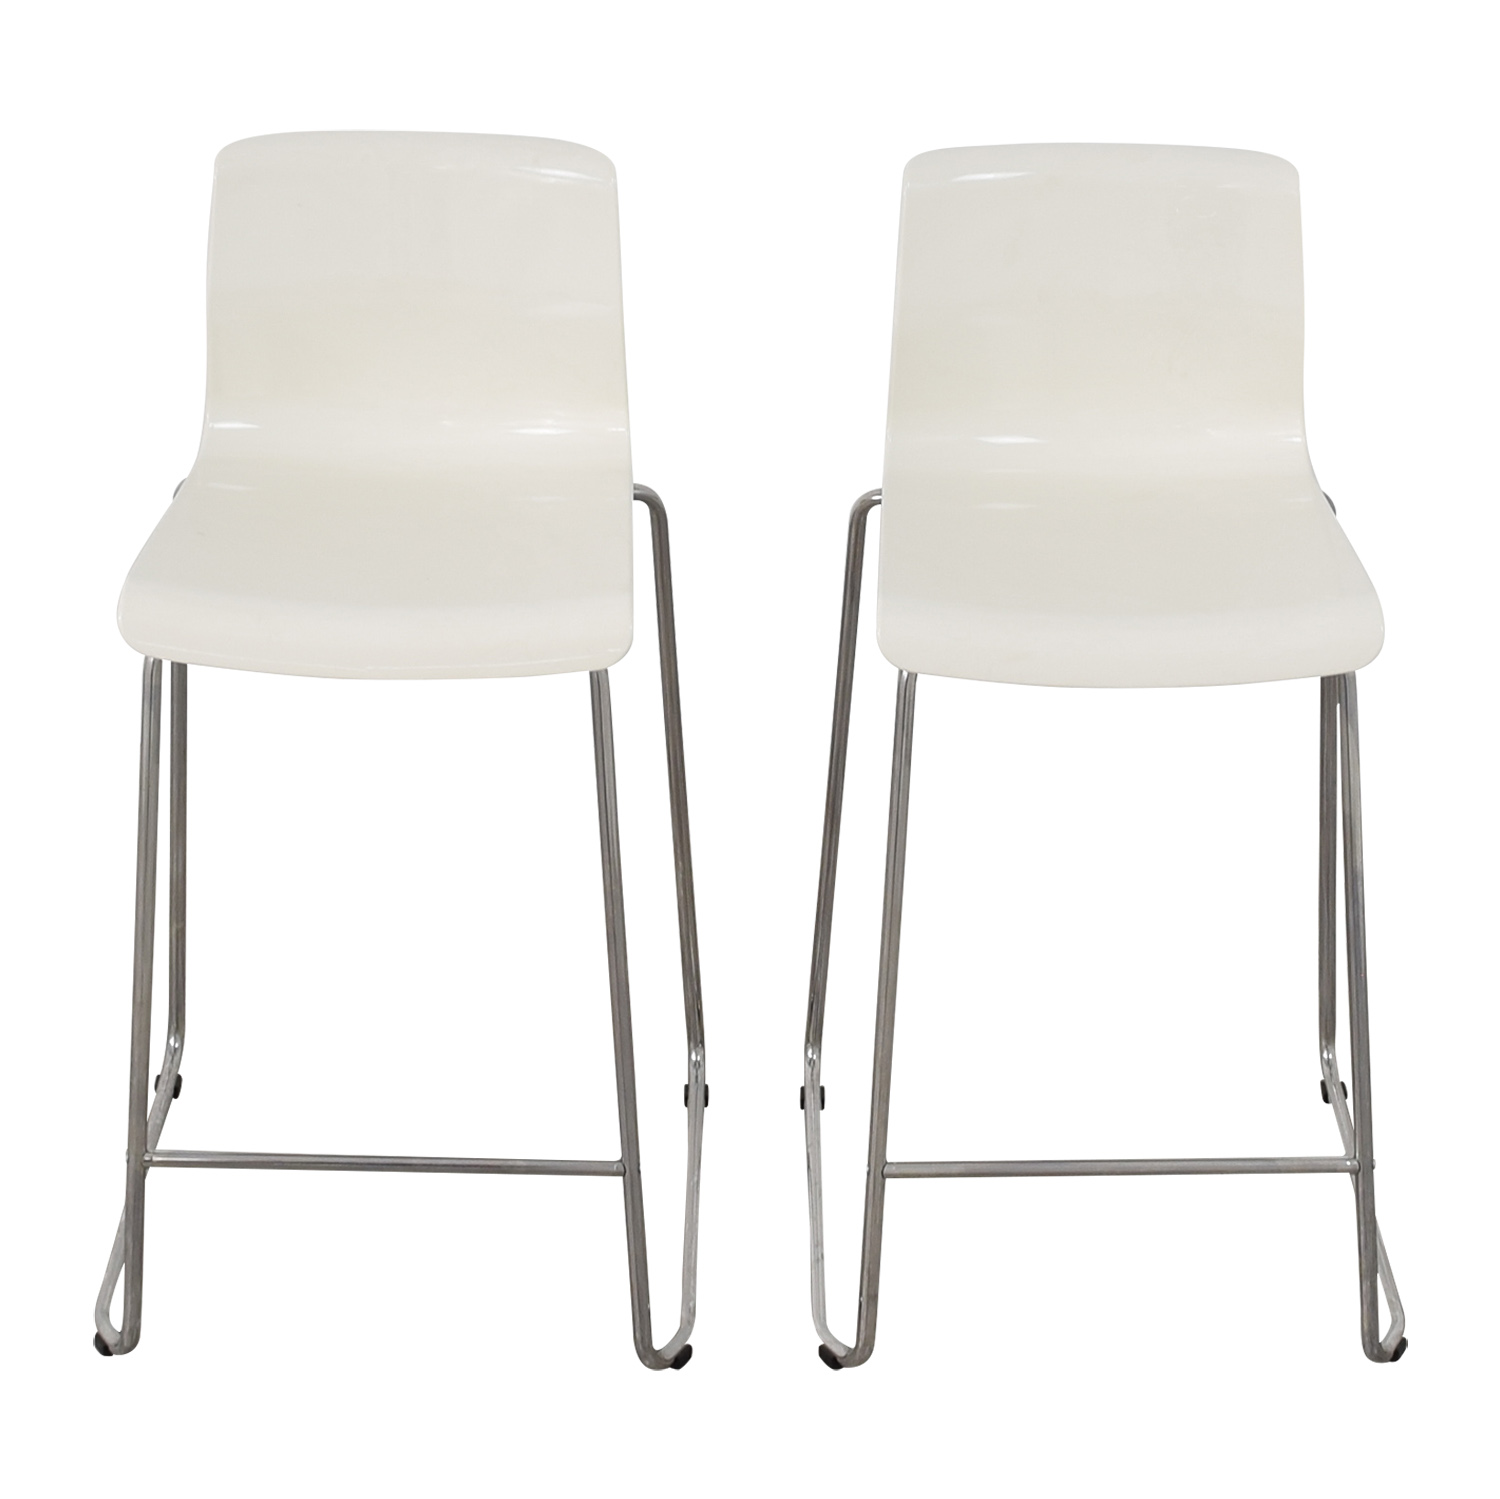 36 Inch Bar Stools Ikea 85 Off Ikea Ikea White Glen Bar Stools Chairs